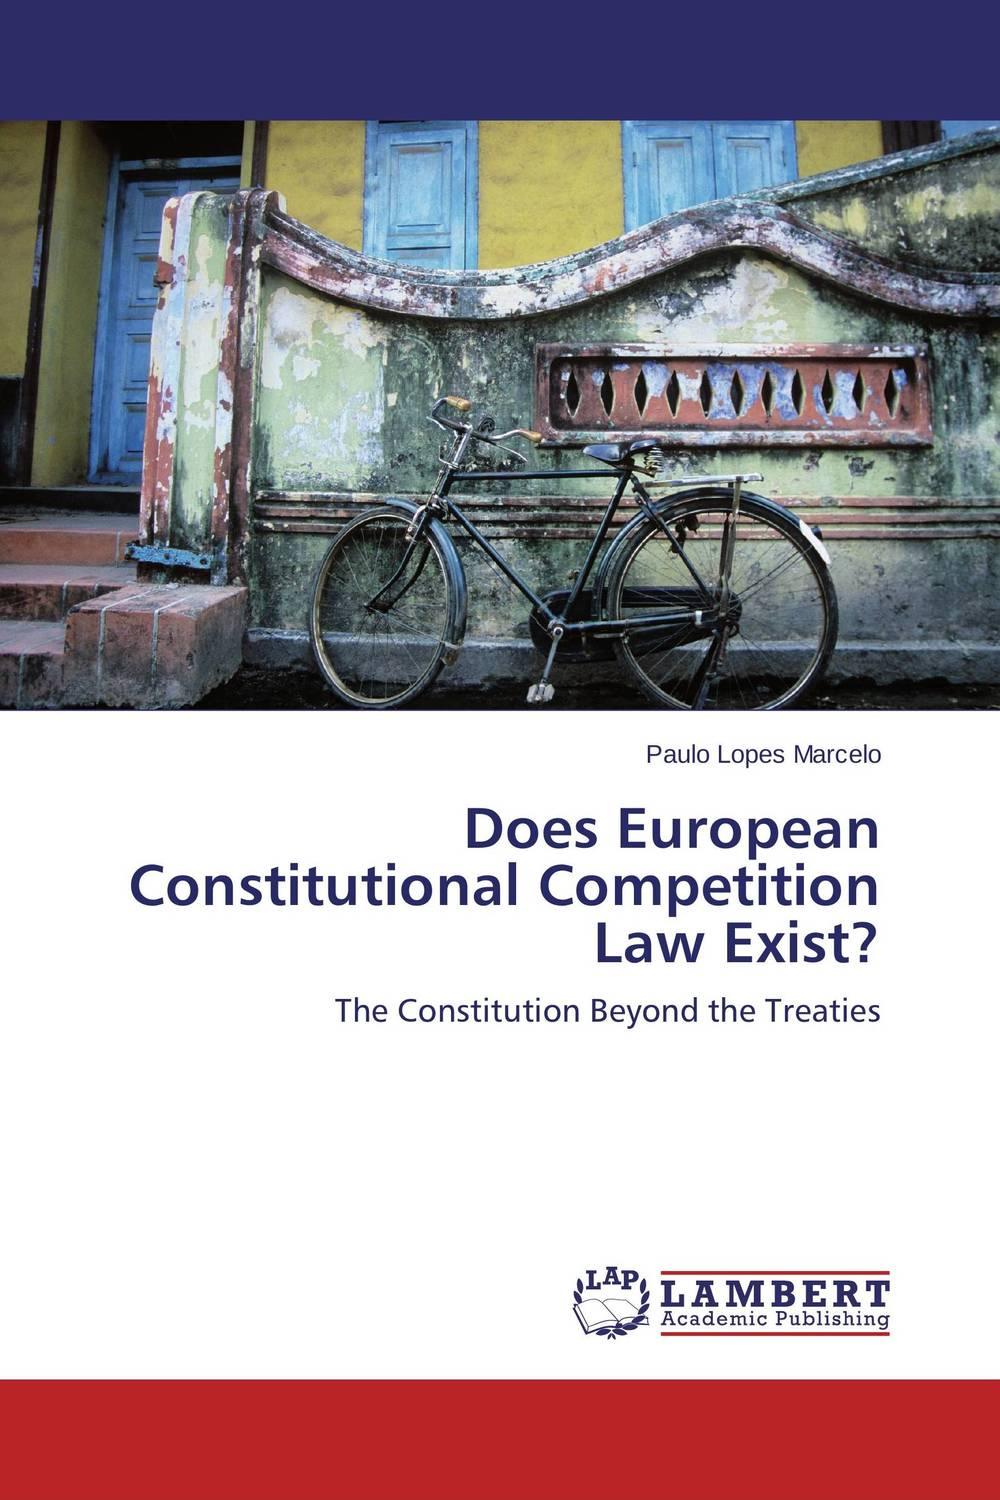 Does European Constitutional Competition Law Exist? italian constitutional justice in global context